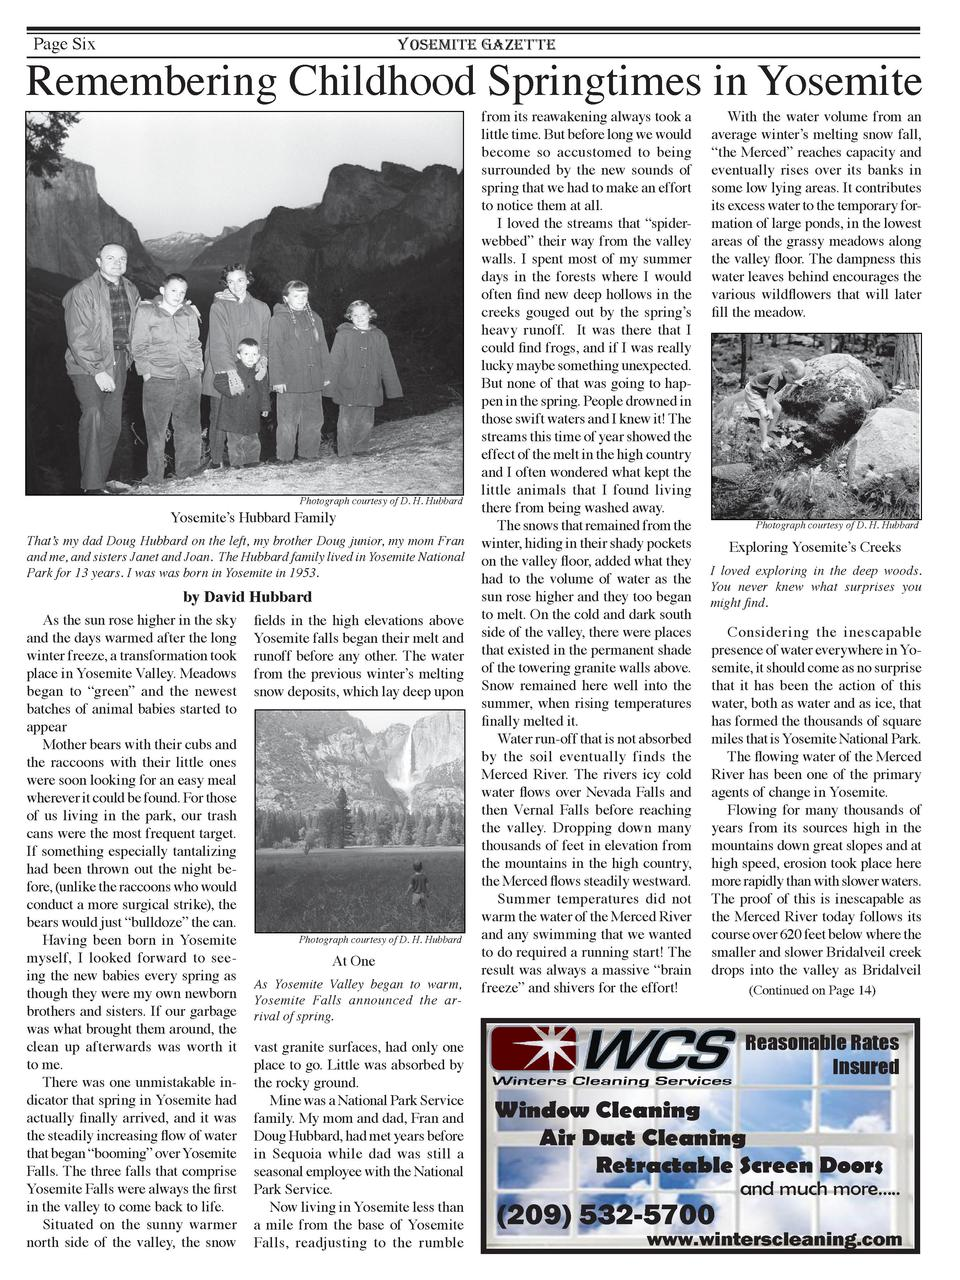 Page Six  YOSEMITE GAZETTE  Remembering Childhood Springtimes in Yosemite  Photograph courtesy of D. H. Hubbard  Yosemite ...